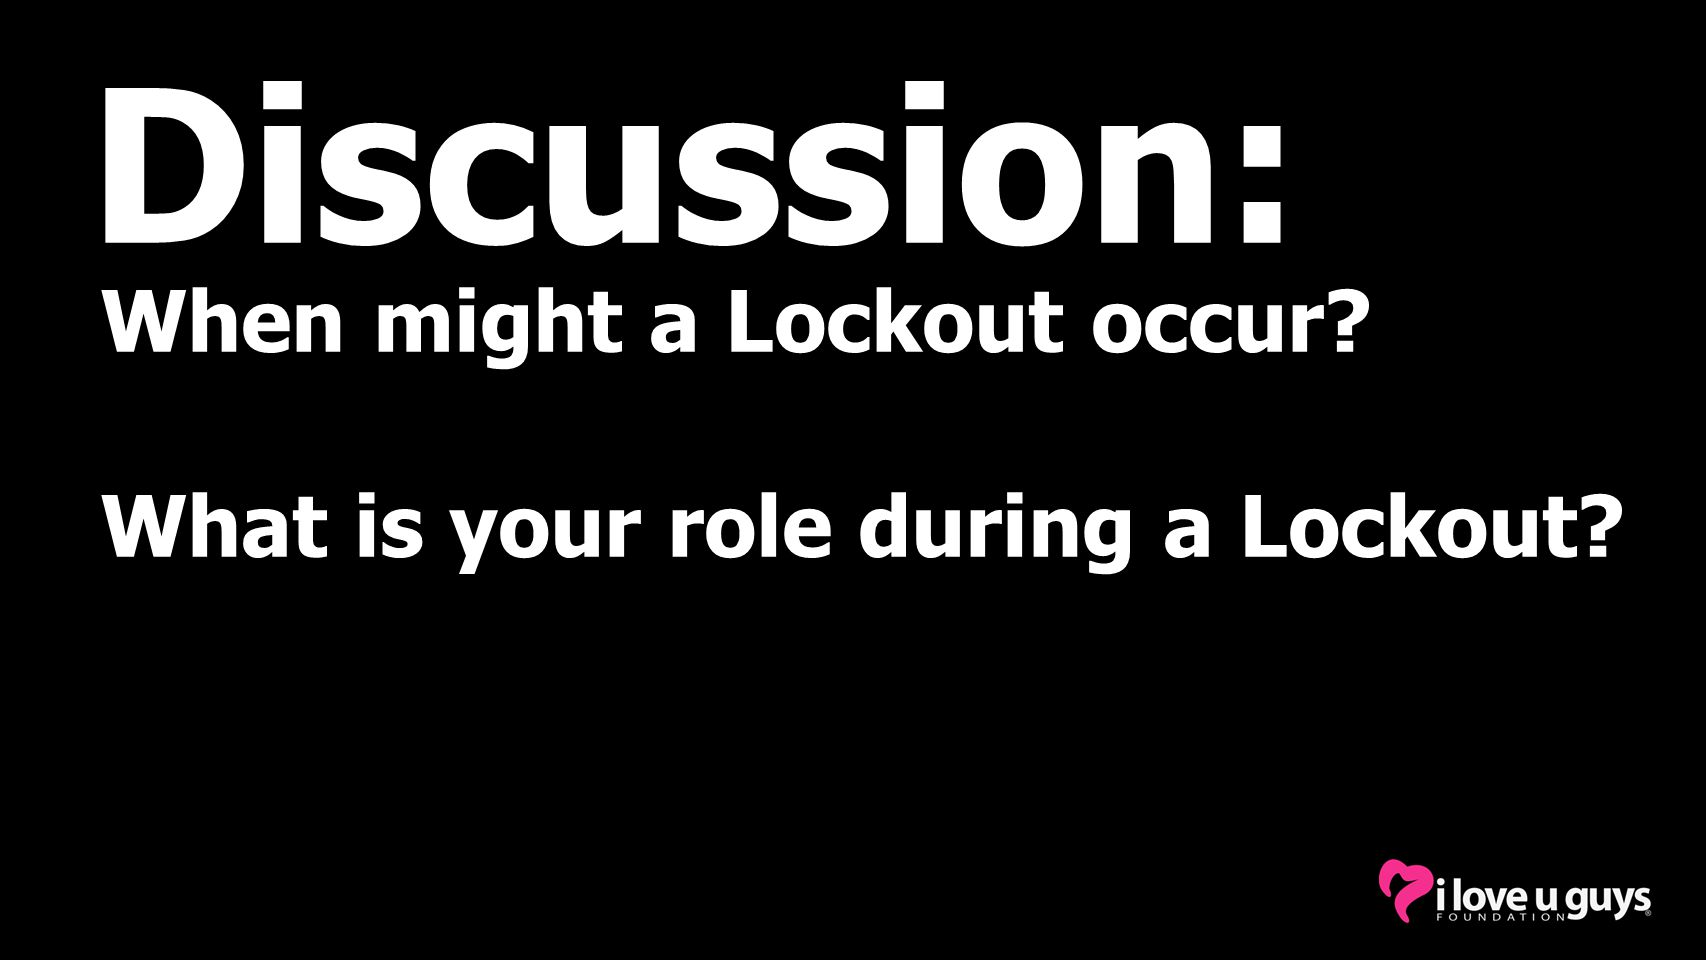 Discussion: When might a Lockout occur? What is your role during a Lockout?